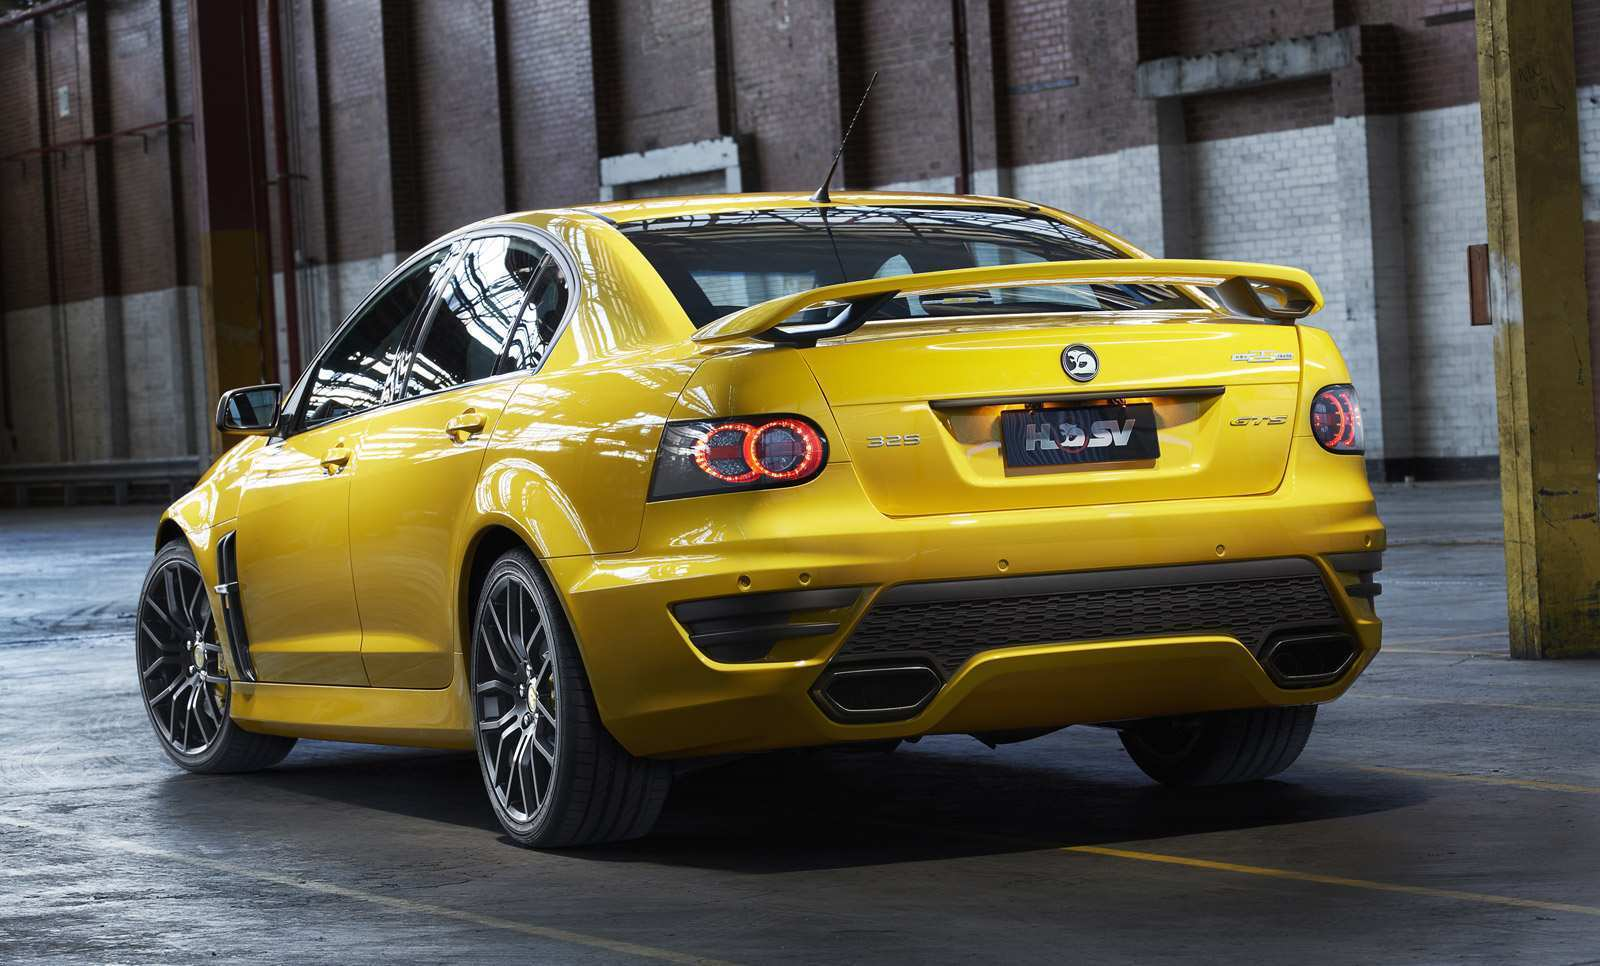 51 The 2020 Holden Commodore Gts New Concept